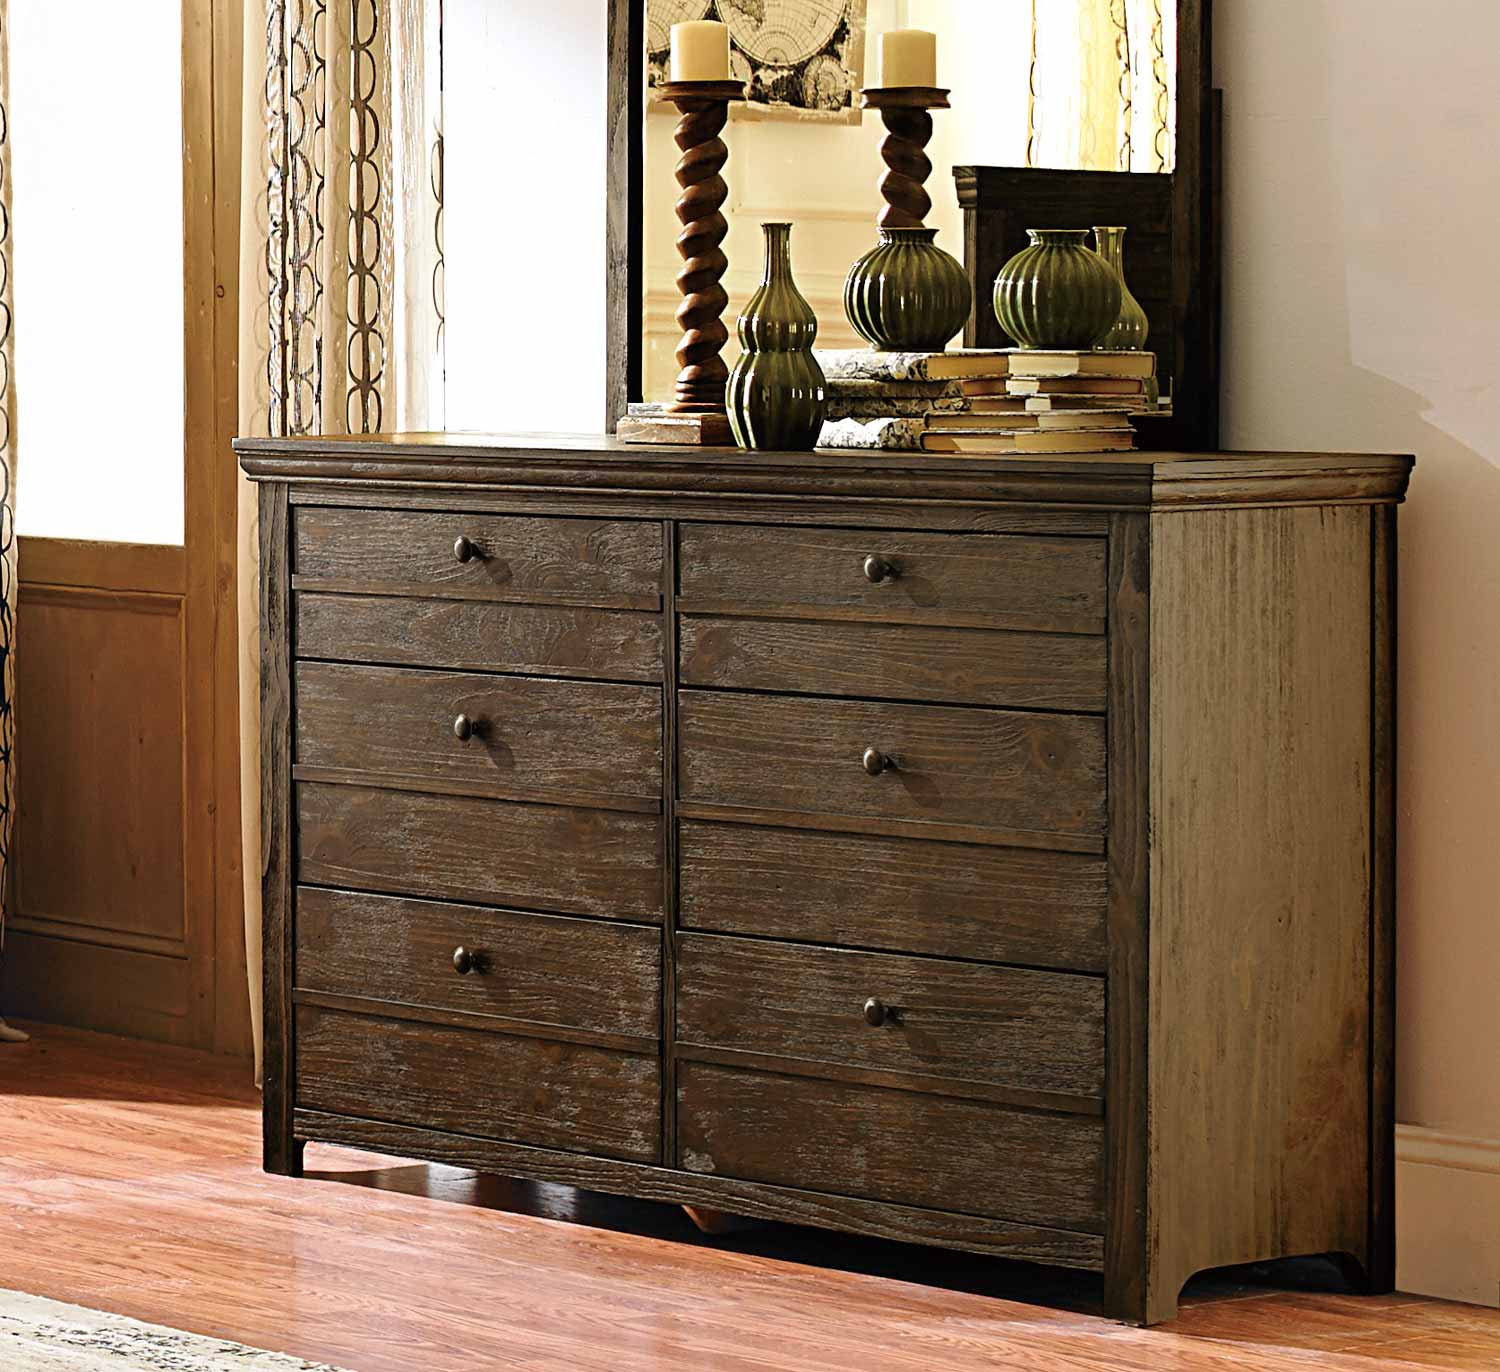 Weathered Gray Bedroom Furniture : Homelegance hardwin bedroom set weathered grey rustic